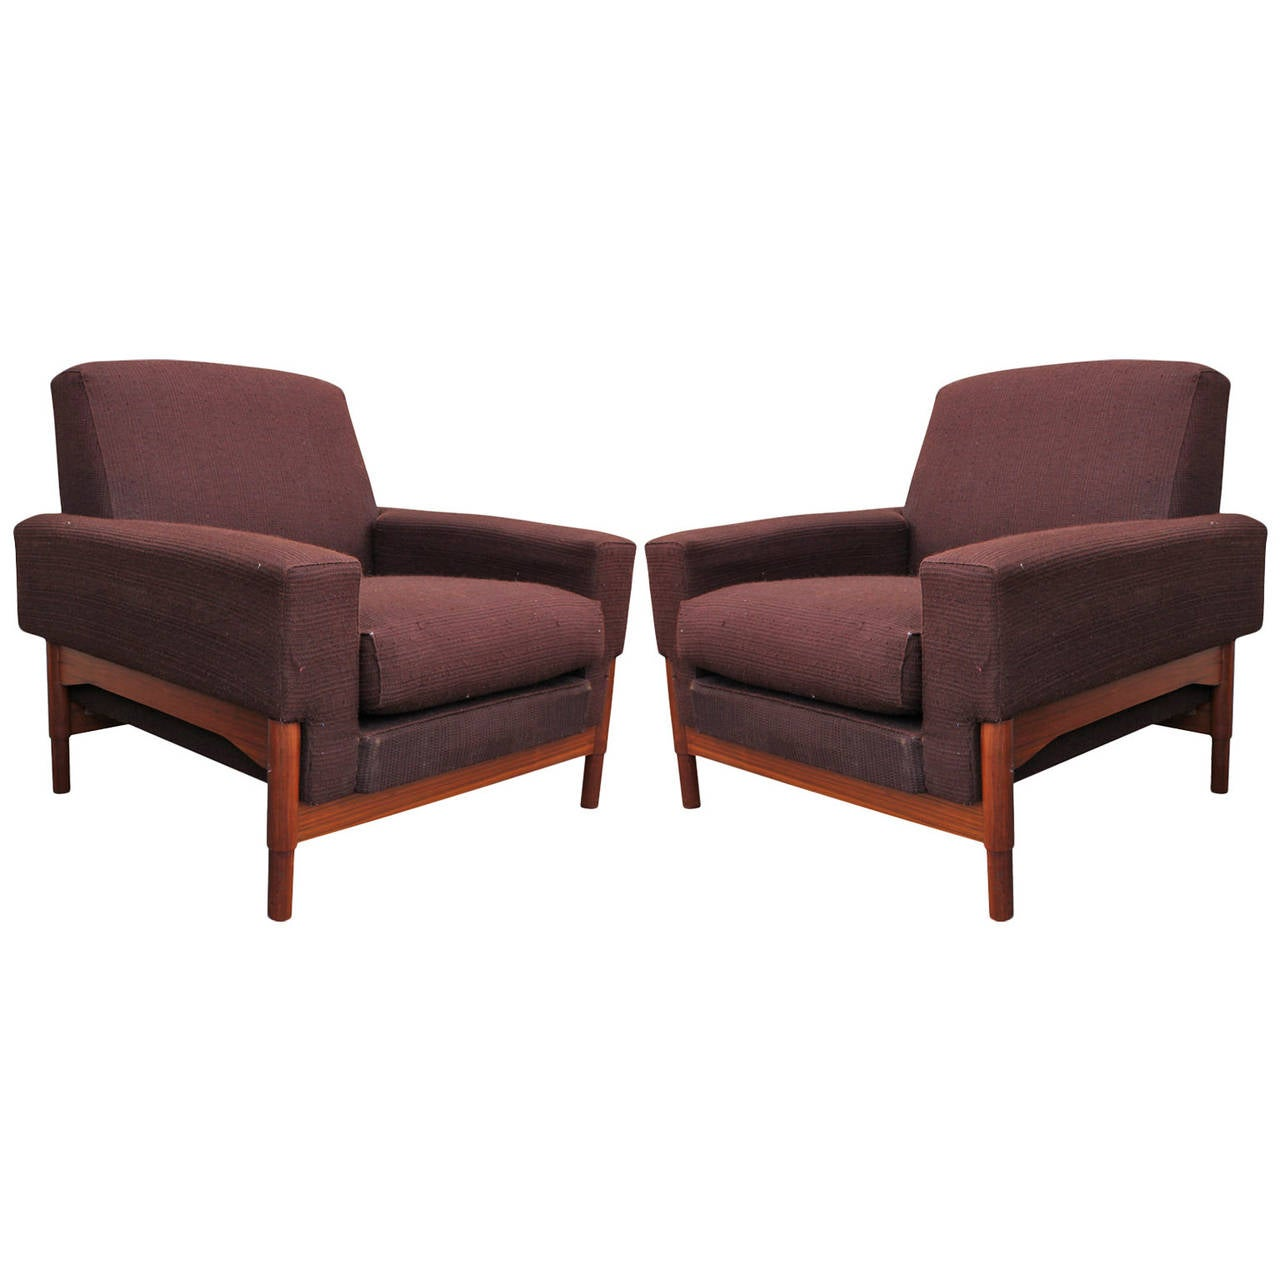 Great Pair of Mid-Century Modern Sculptural Saporiti Lounge Chairs